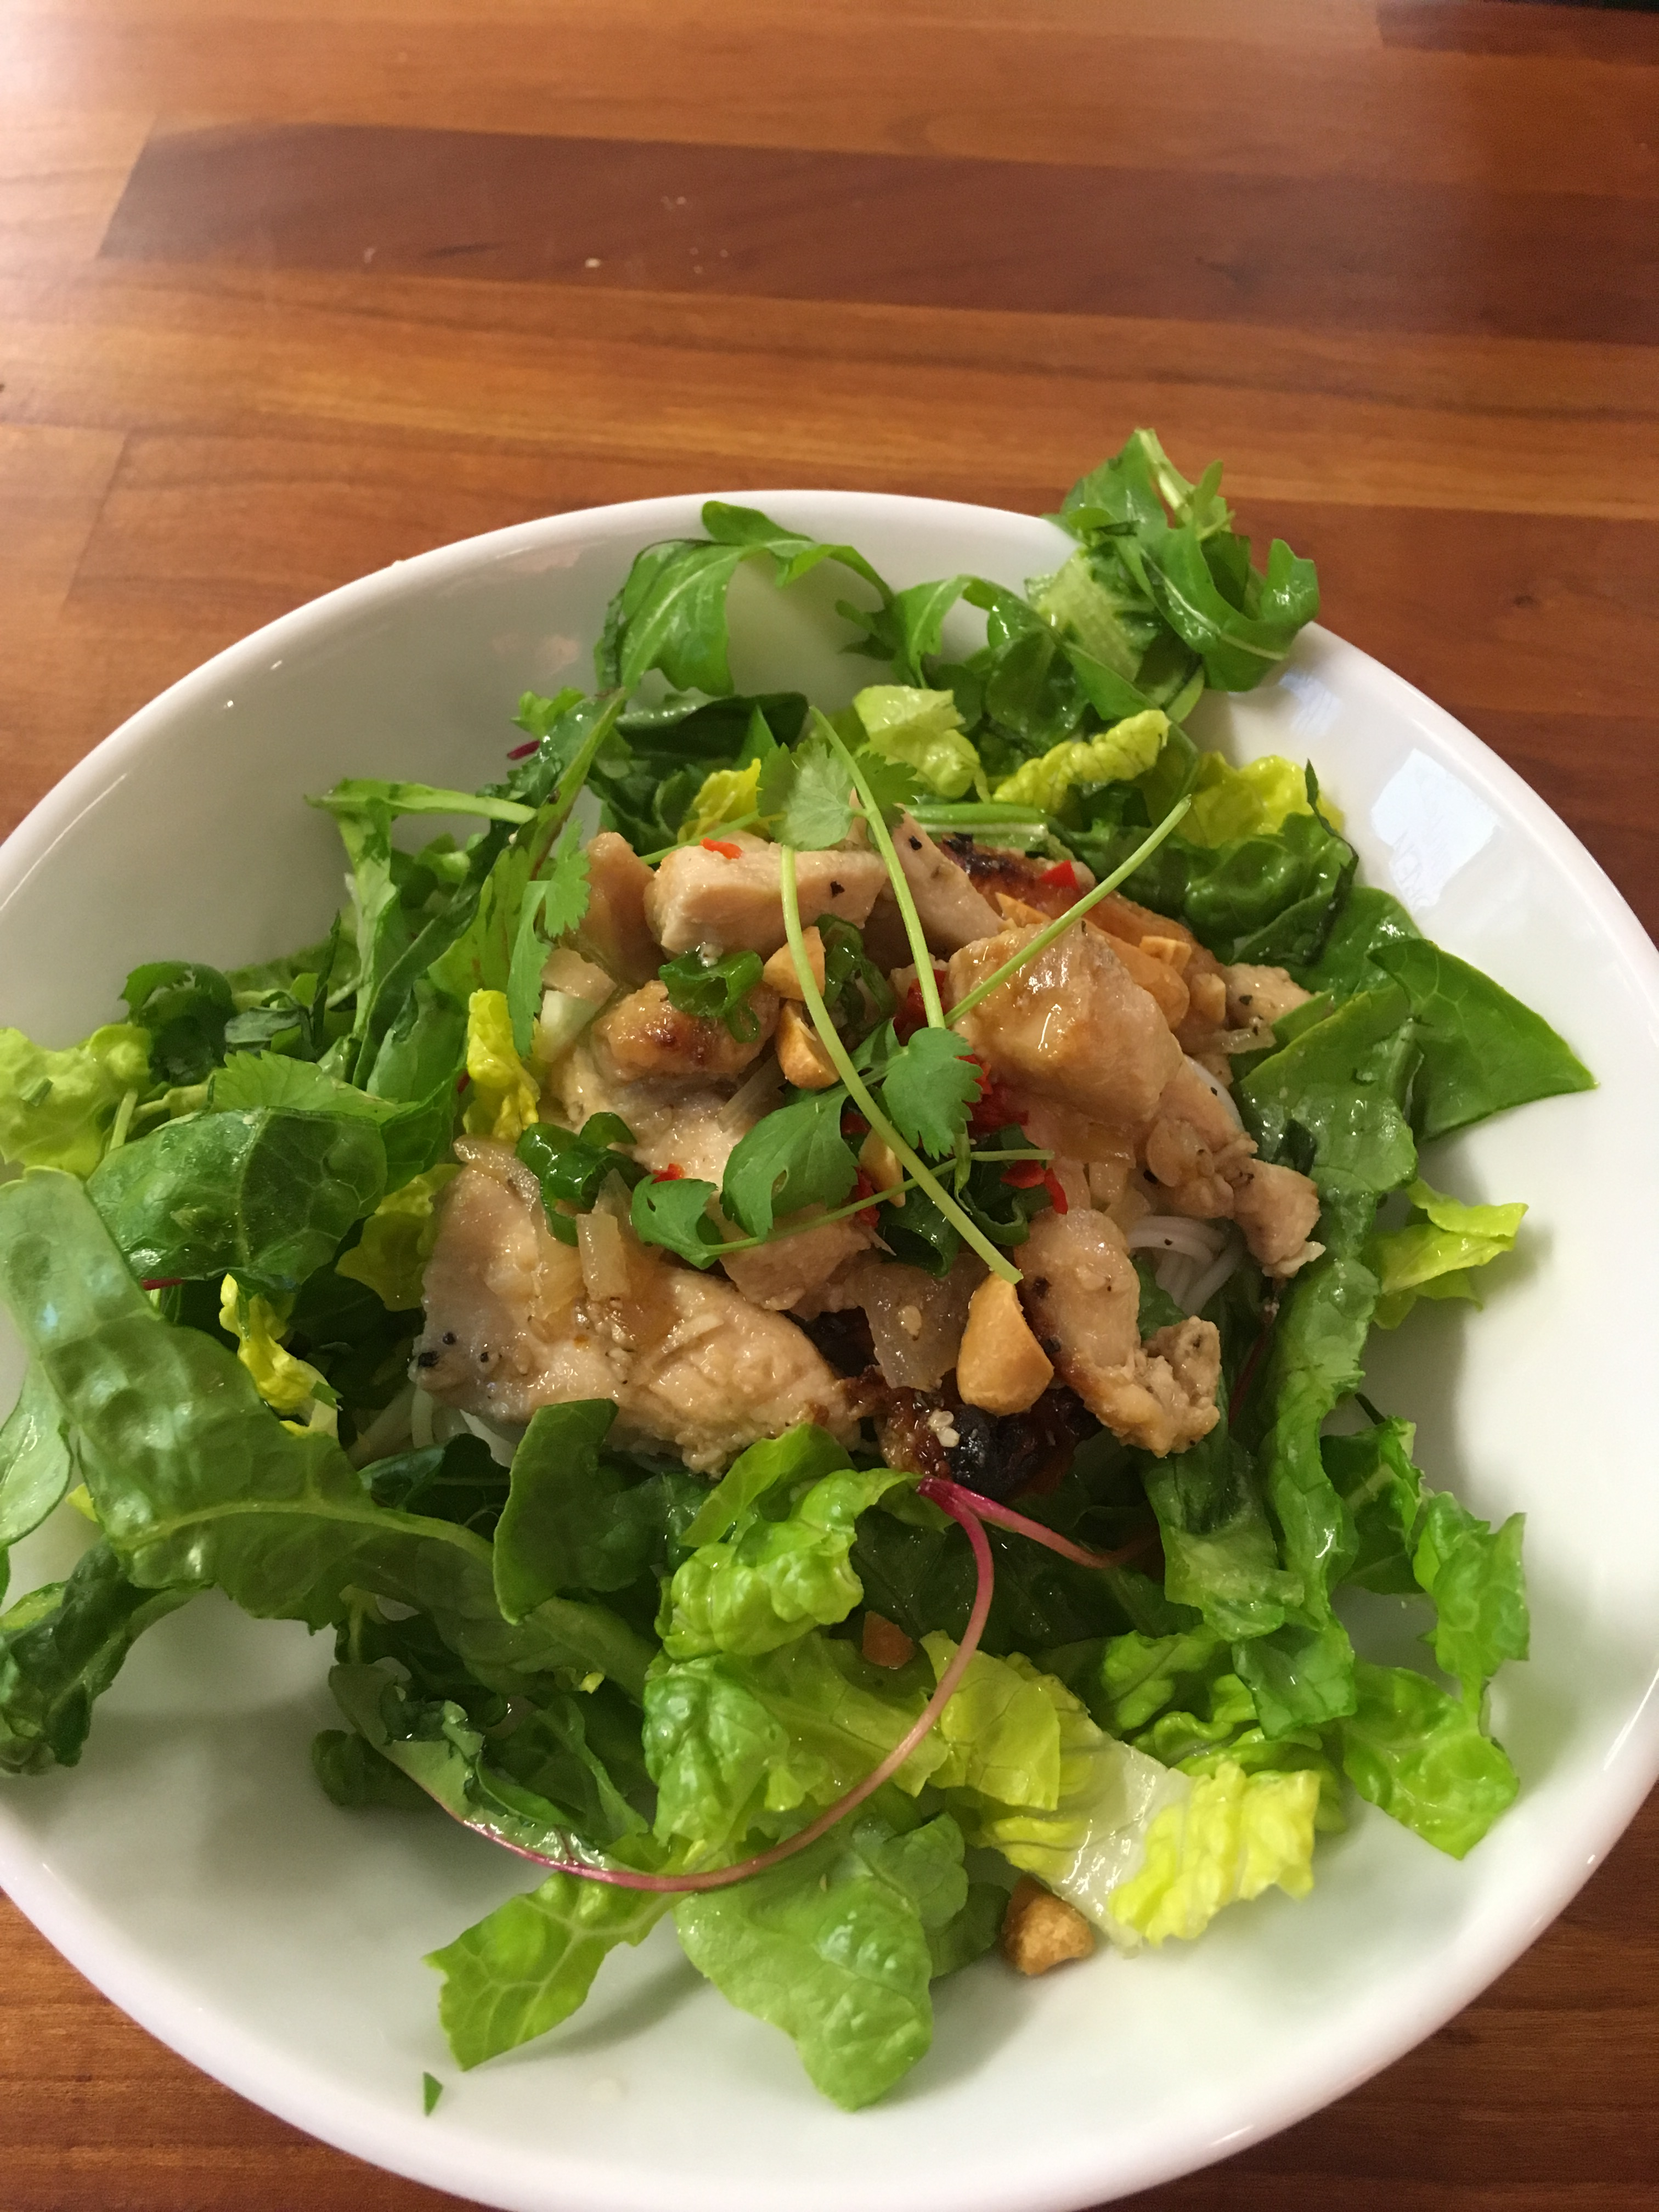 Vietnamese Cuisine With Tram – Bun Thit Nuong, Noodle Salad Bowl With Lemongrass Chicken